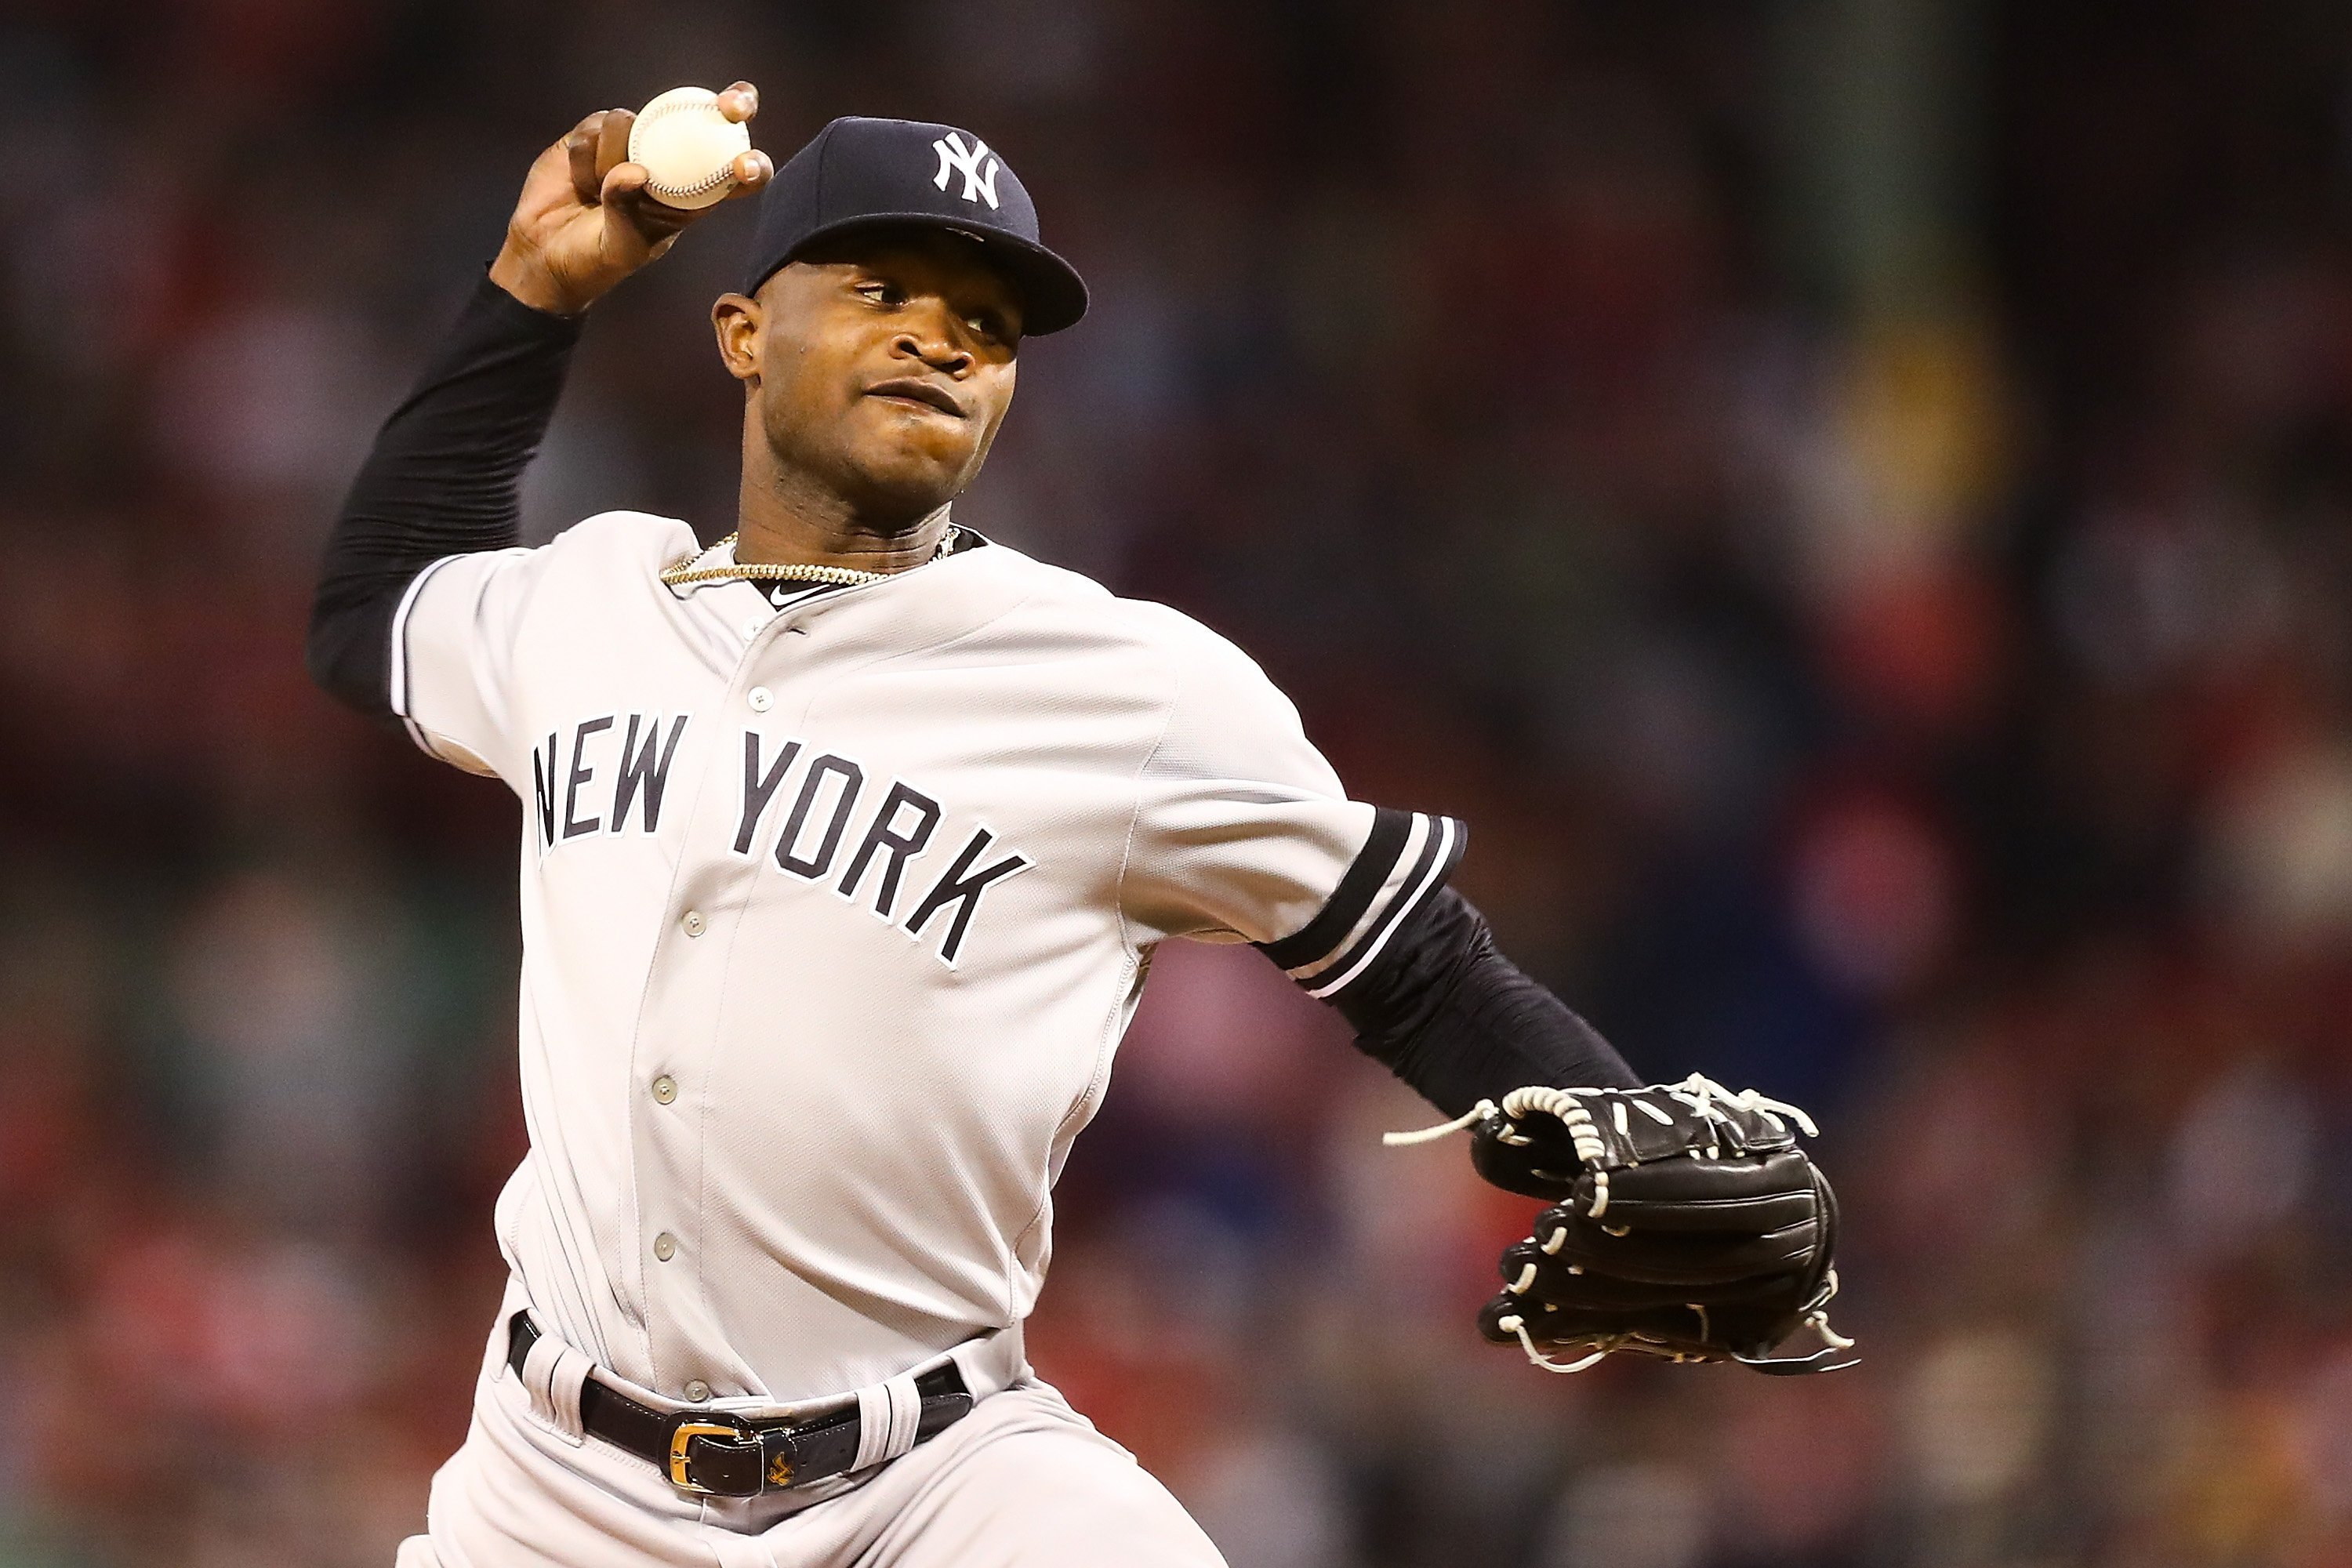 NY Yankees pitcher Domingo Germán placed on administrative leave for alleged domestic violence incident